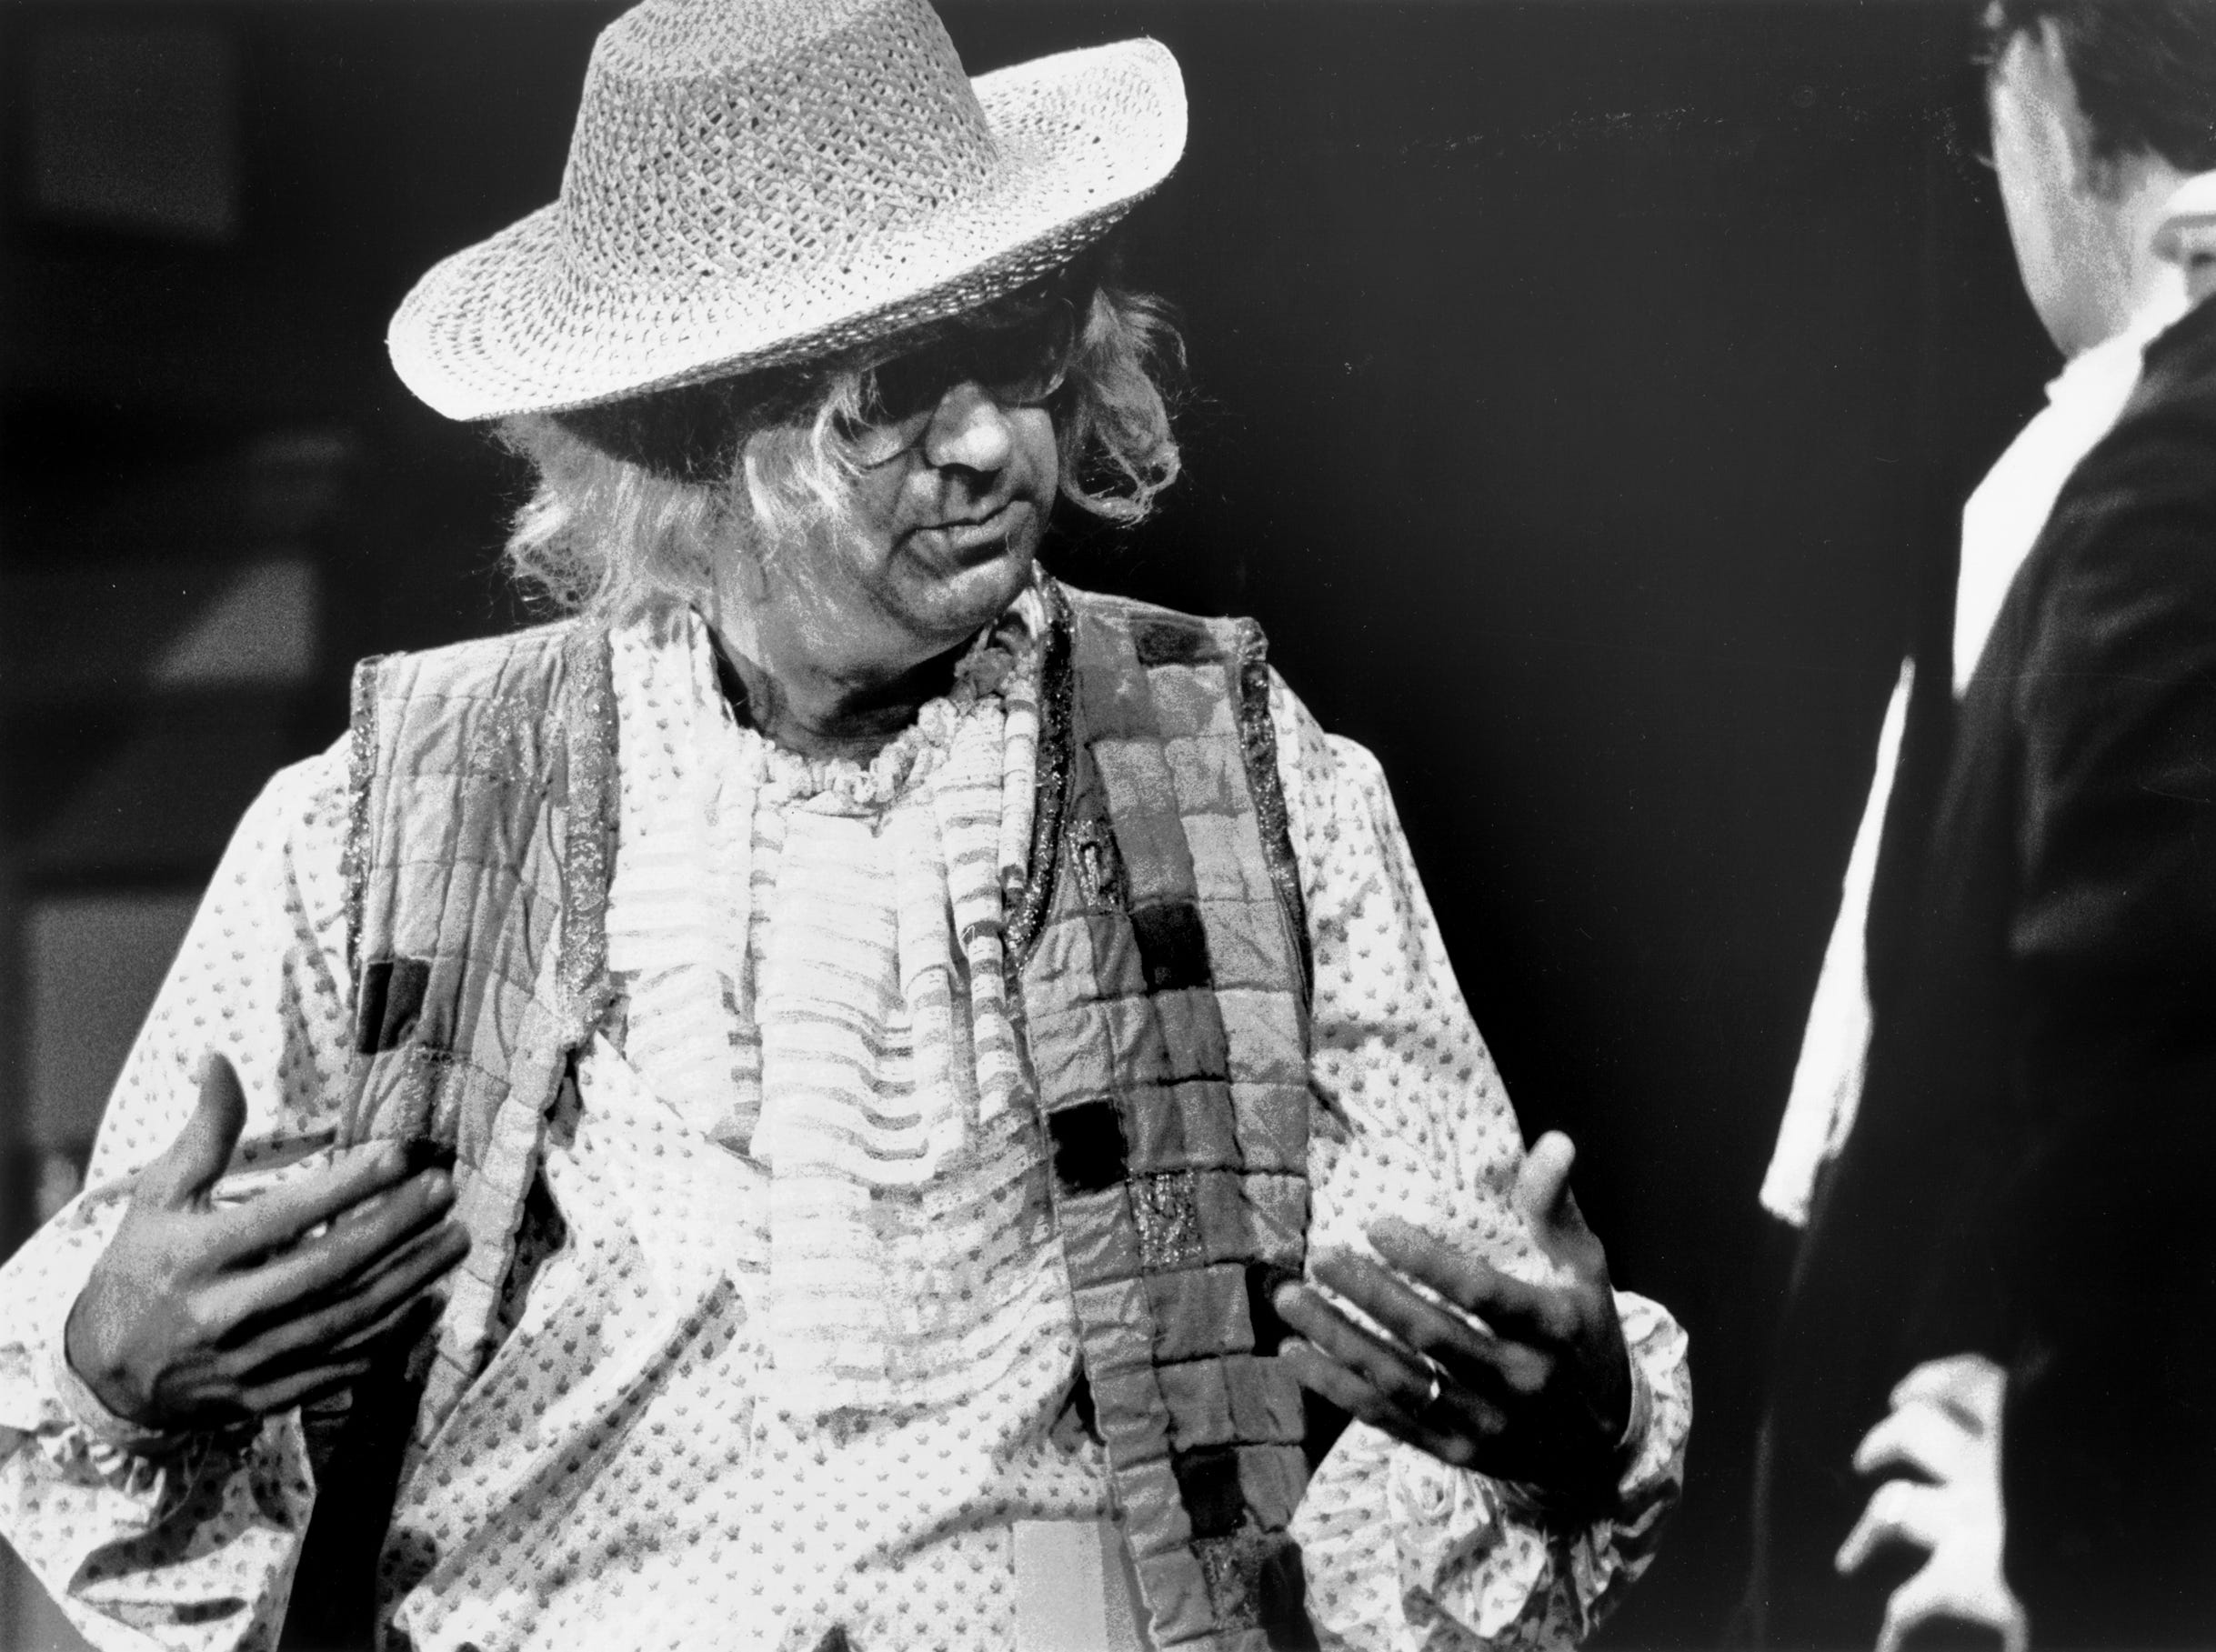 "Mayor Dick Hackett (left) practices for his part in a benefit for Playhouse On The Square in December 1987. The mayor plays the part of Thibaut and appears with Ron Terry (not pictured), who plays Hackett's son in the play ""A Doctor in Spite of Himself."" Terry is chief financial officer of First Tennessee Bank."